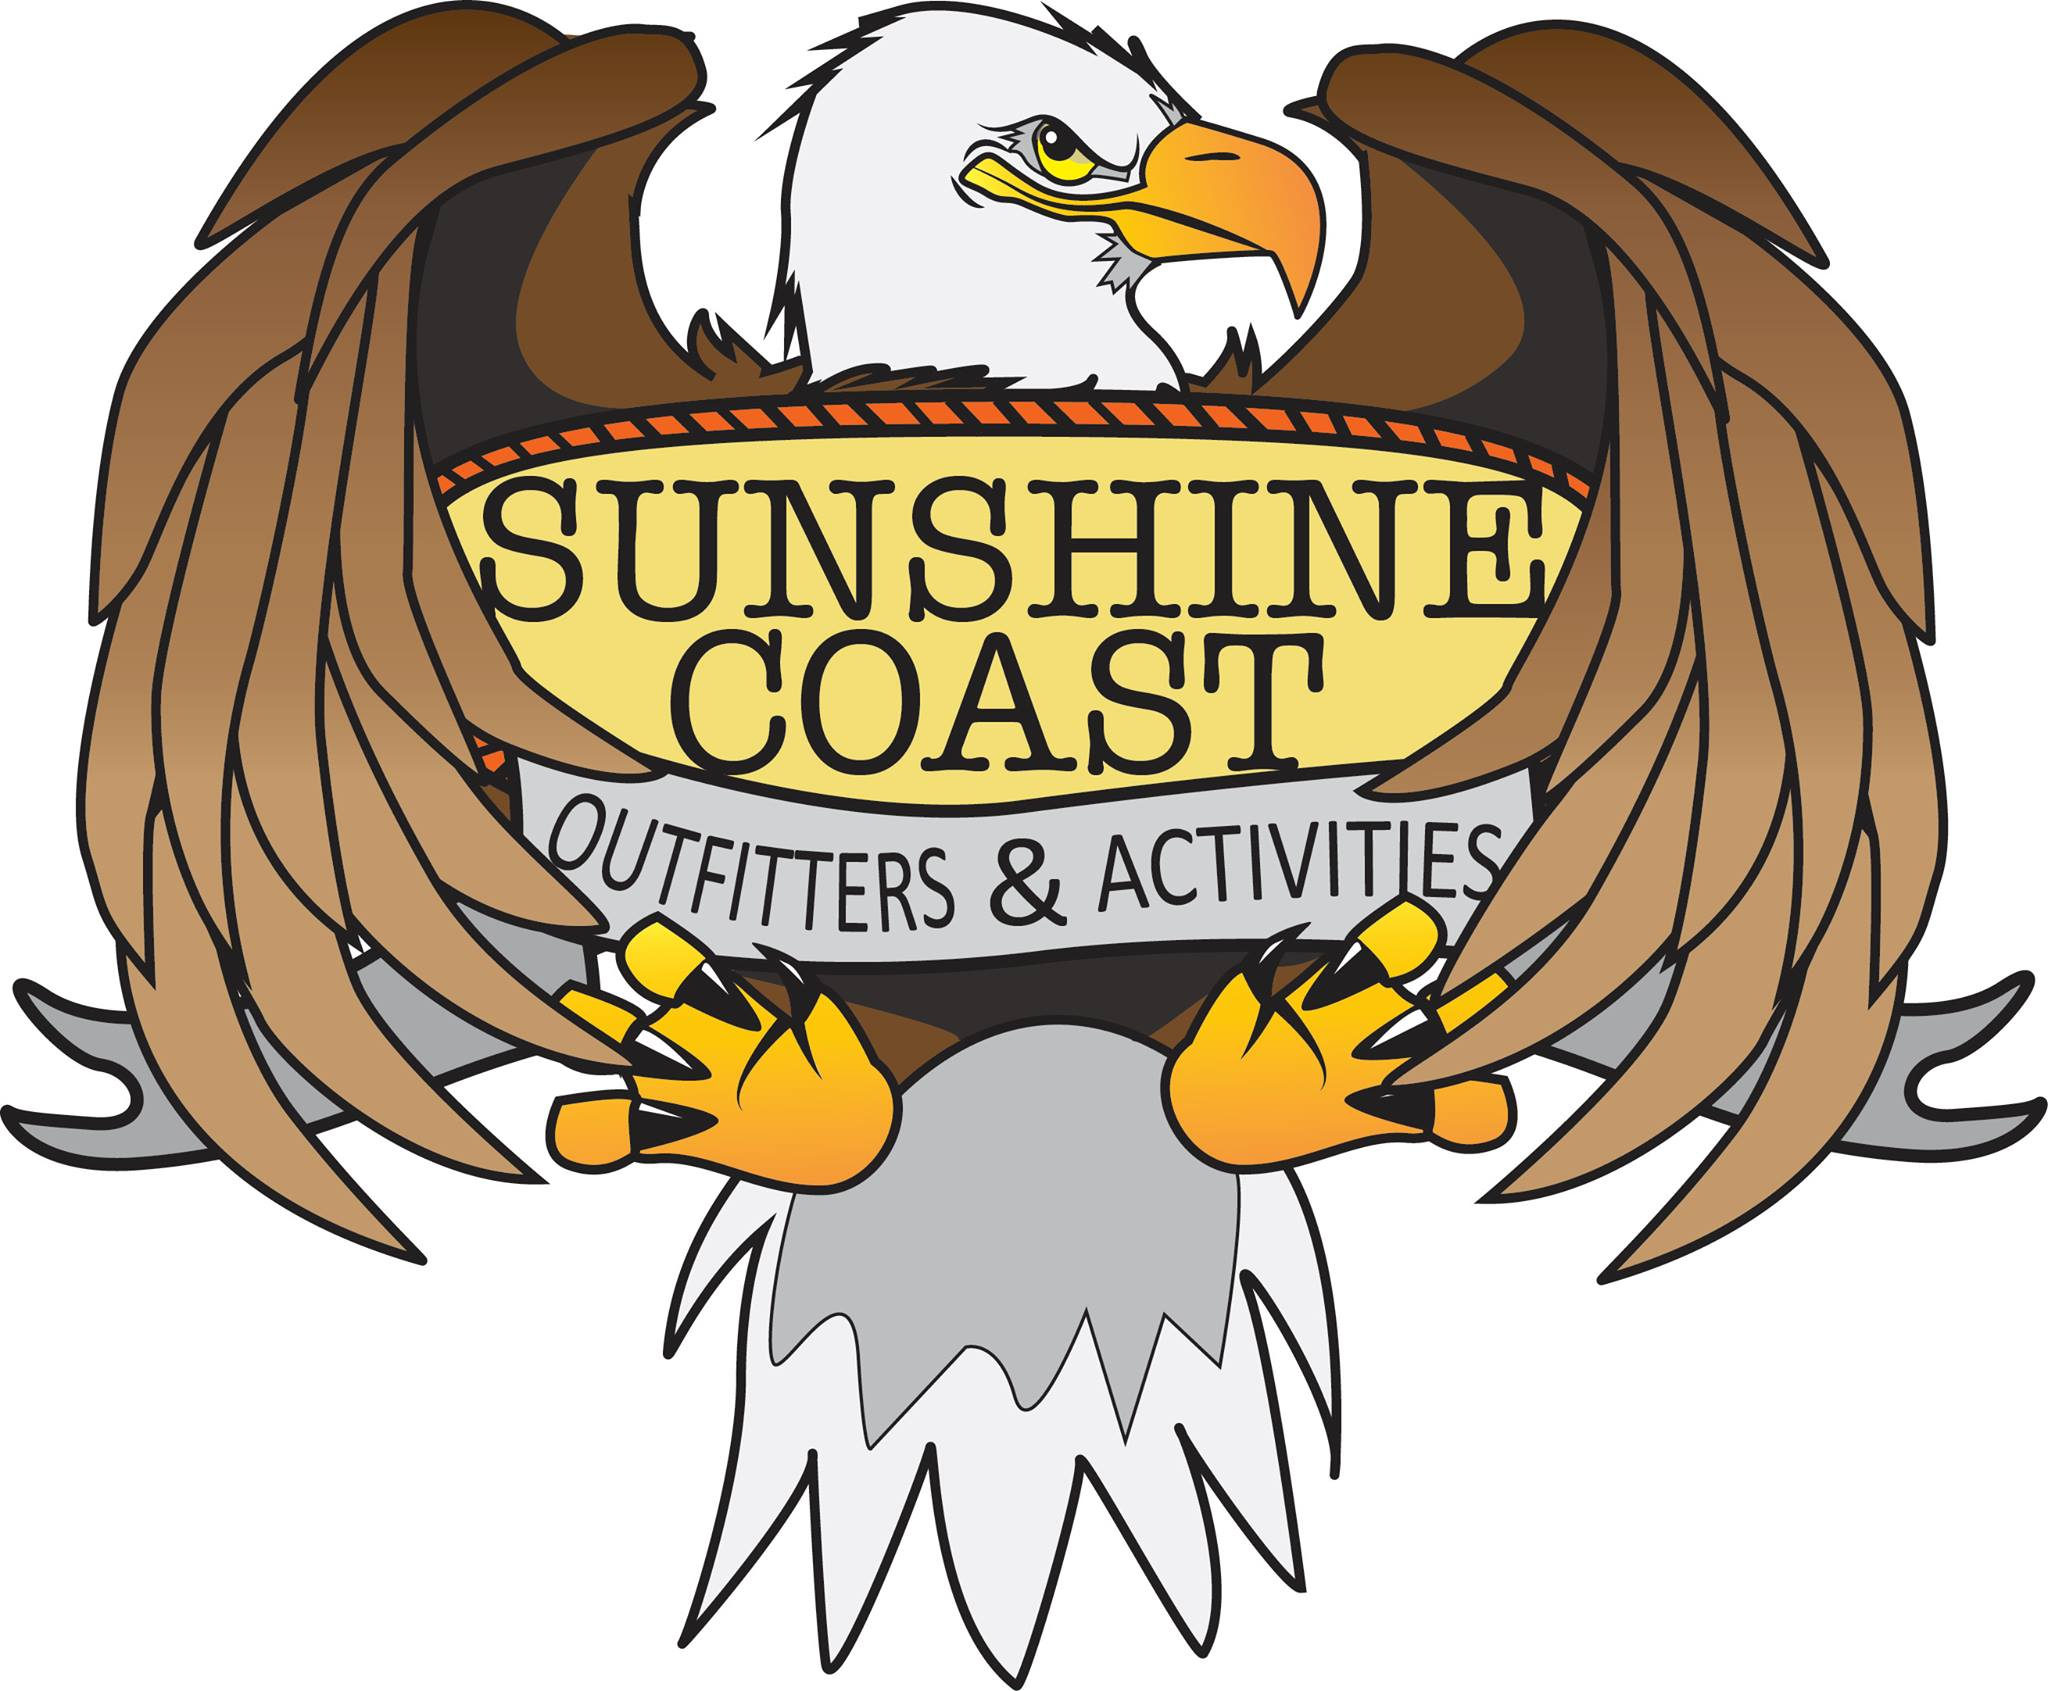 Sunshine Coast Outfitters and Activities